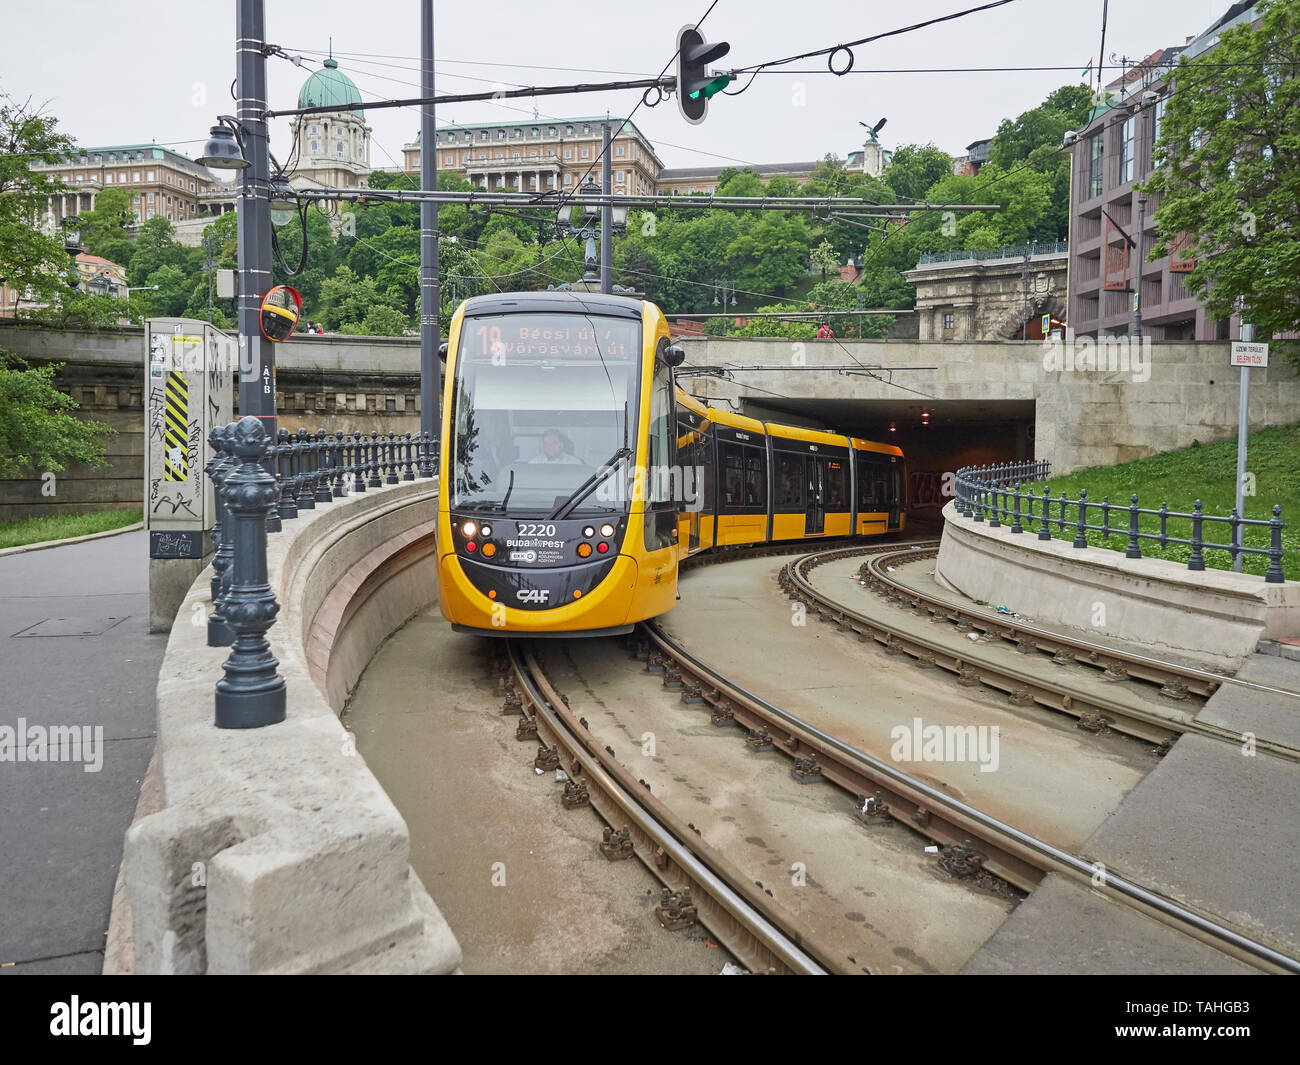 Budapest modern tram 19 along the Buda side of the Danube with Buda castle in the background Hungary - Stock Image